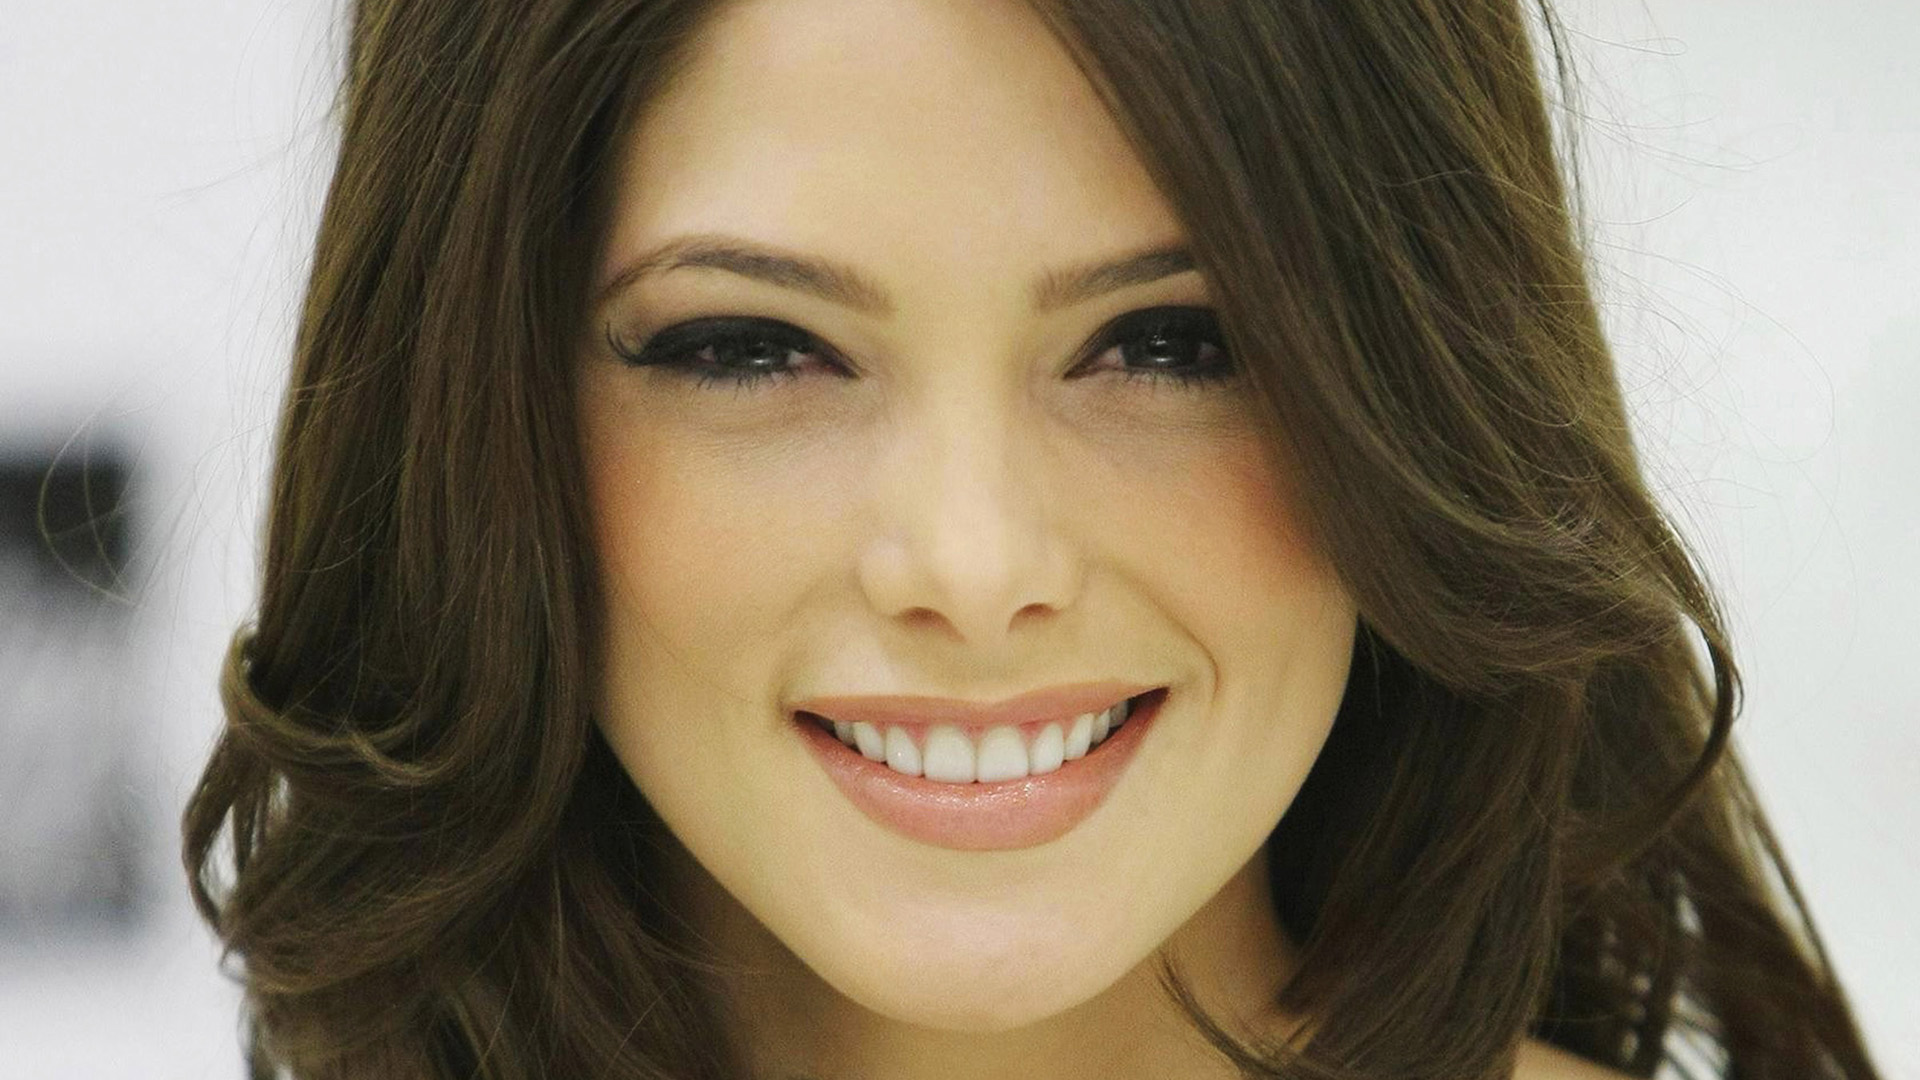 Star Celebrity Wallpapers Ashley Greene Hd Wallpapers: 1000+ Images About Movie Stars On Pinterest